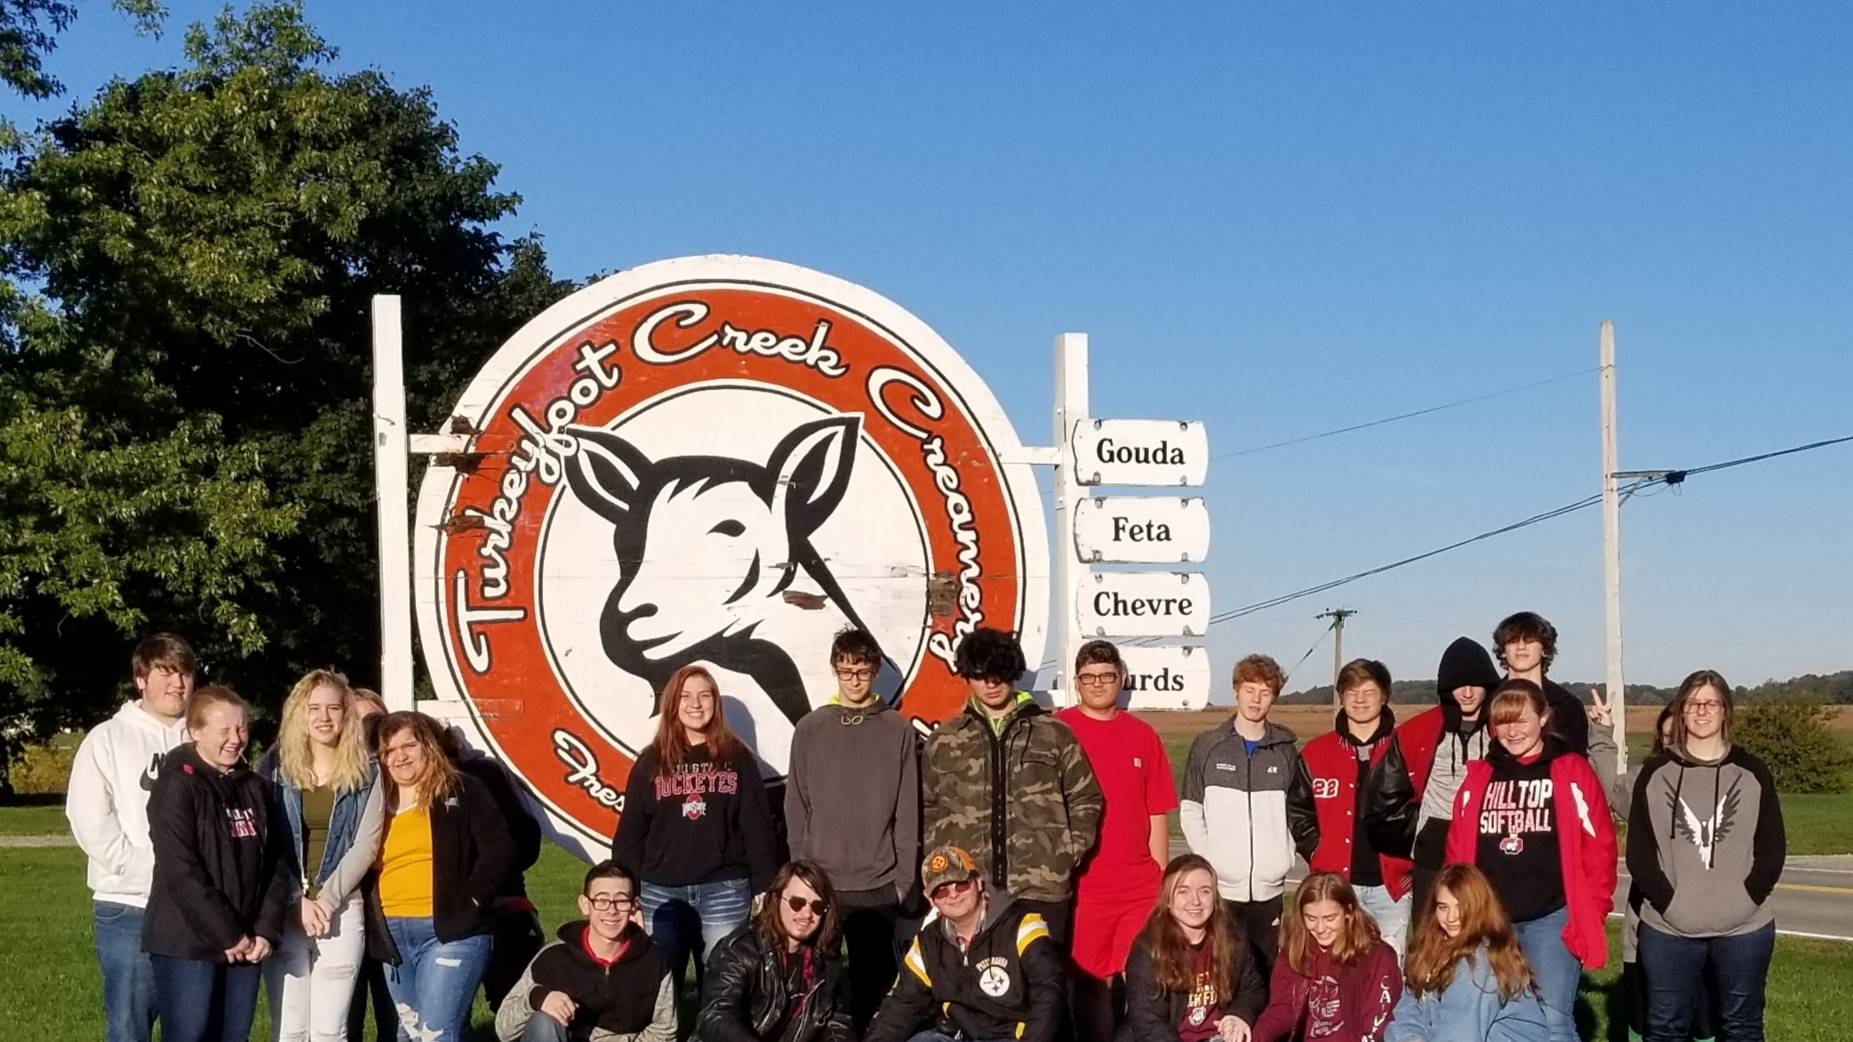 Field Trip to Turkeyfoot Creamery